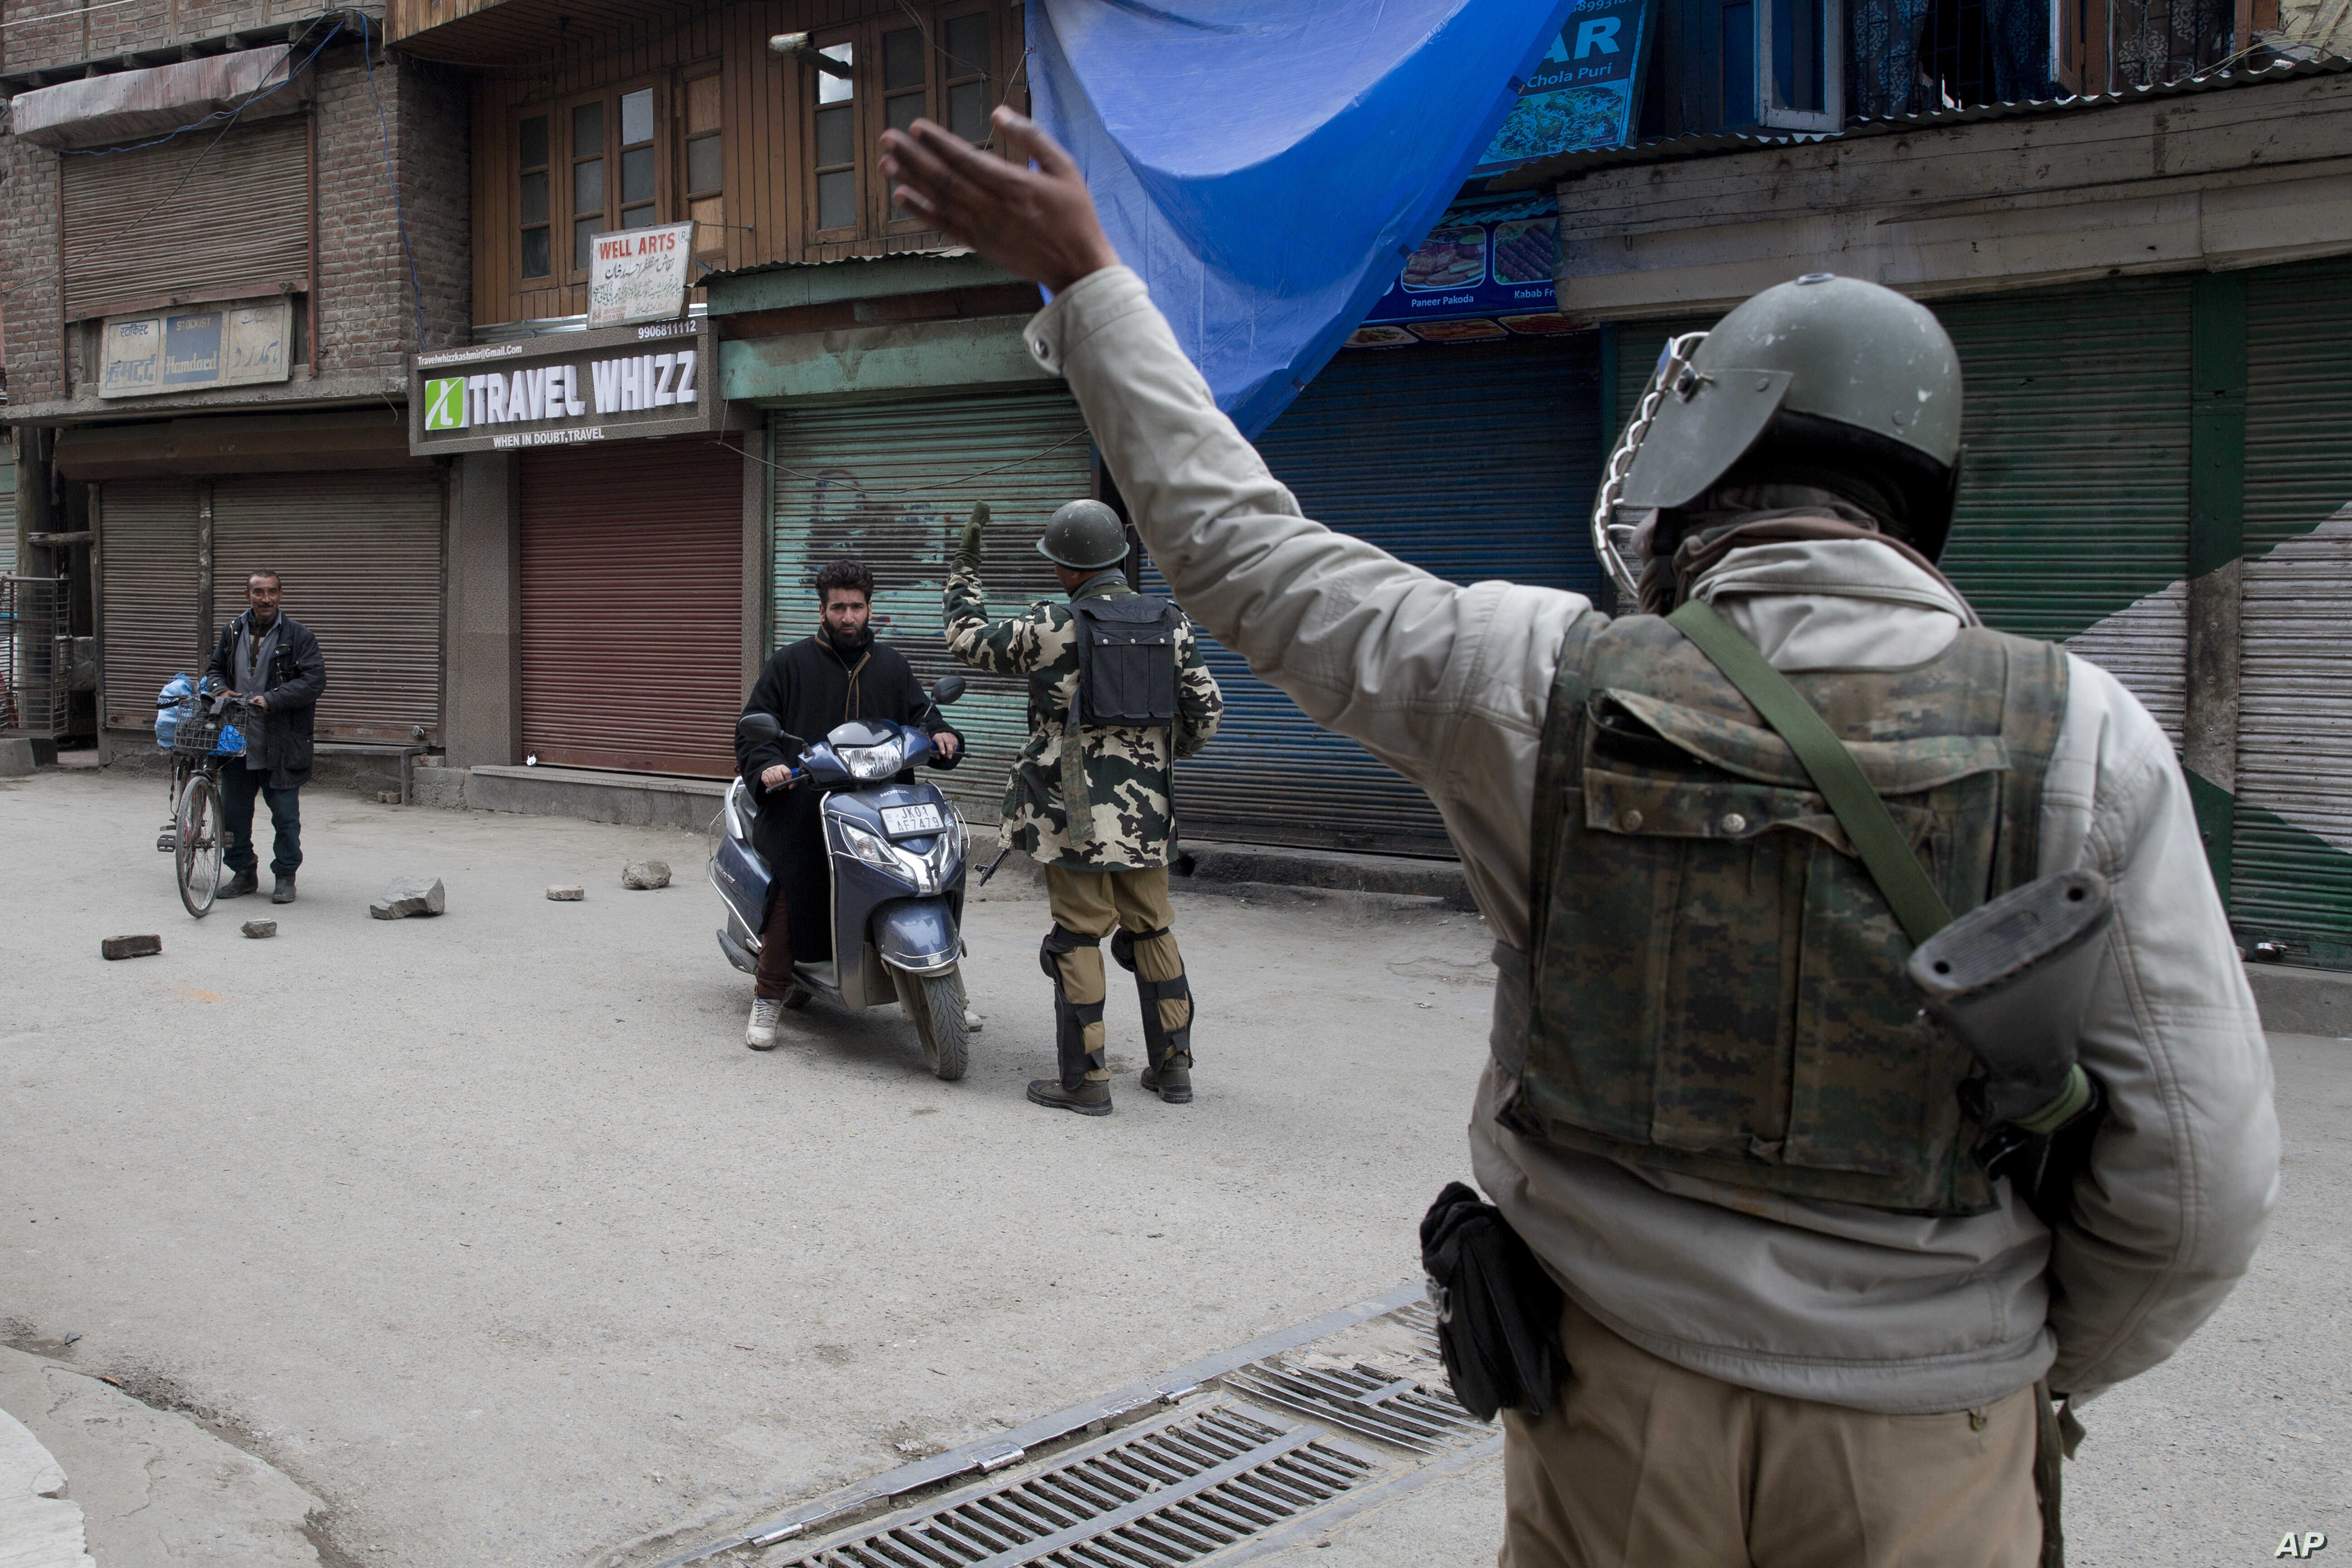 Indian paramilitary soldiers order commuters to turn back during a security lockdown in downtown Srinagar, Indian-controlled Kashmir, March 1, 2019.